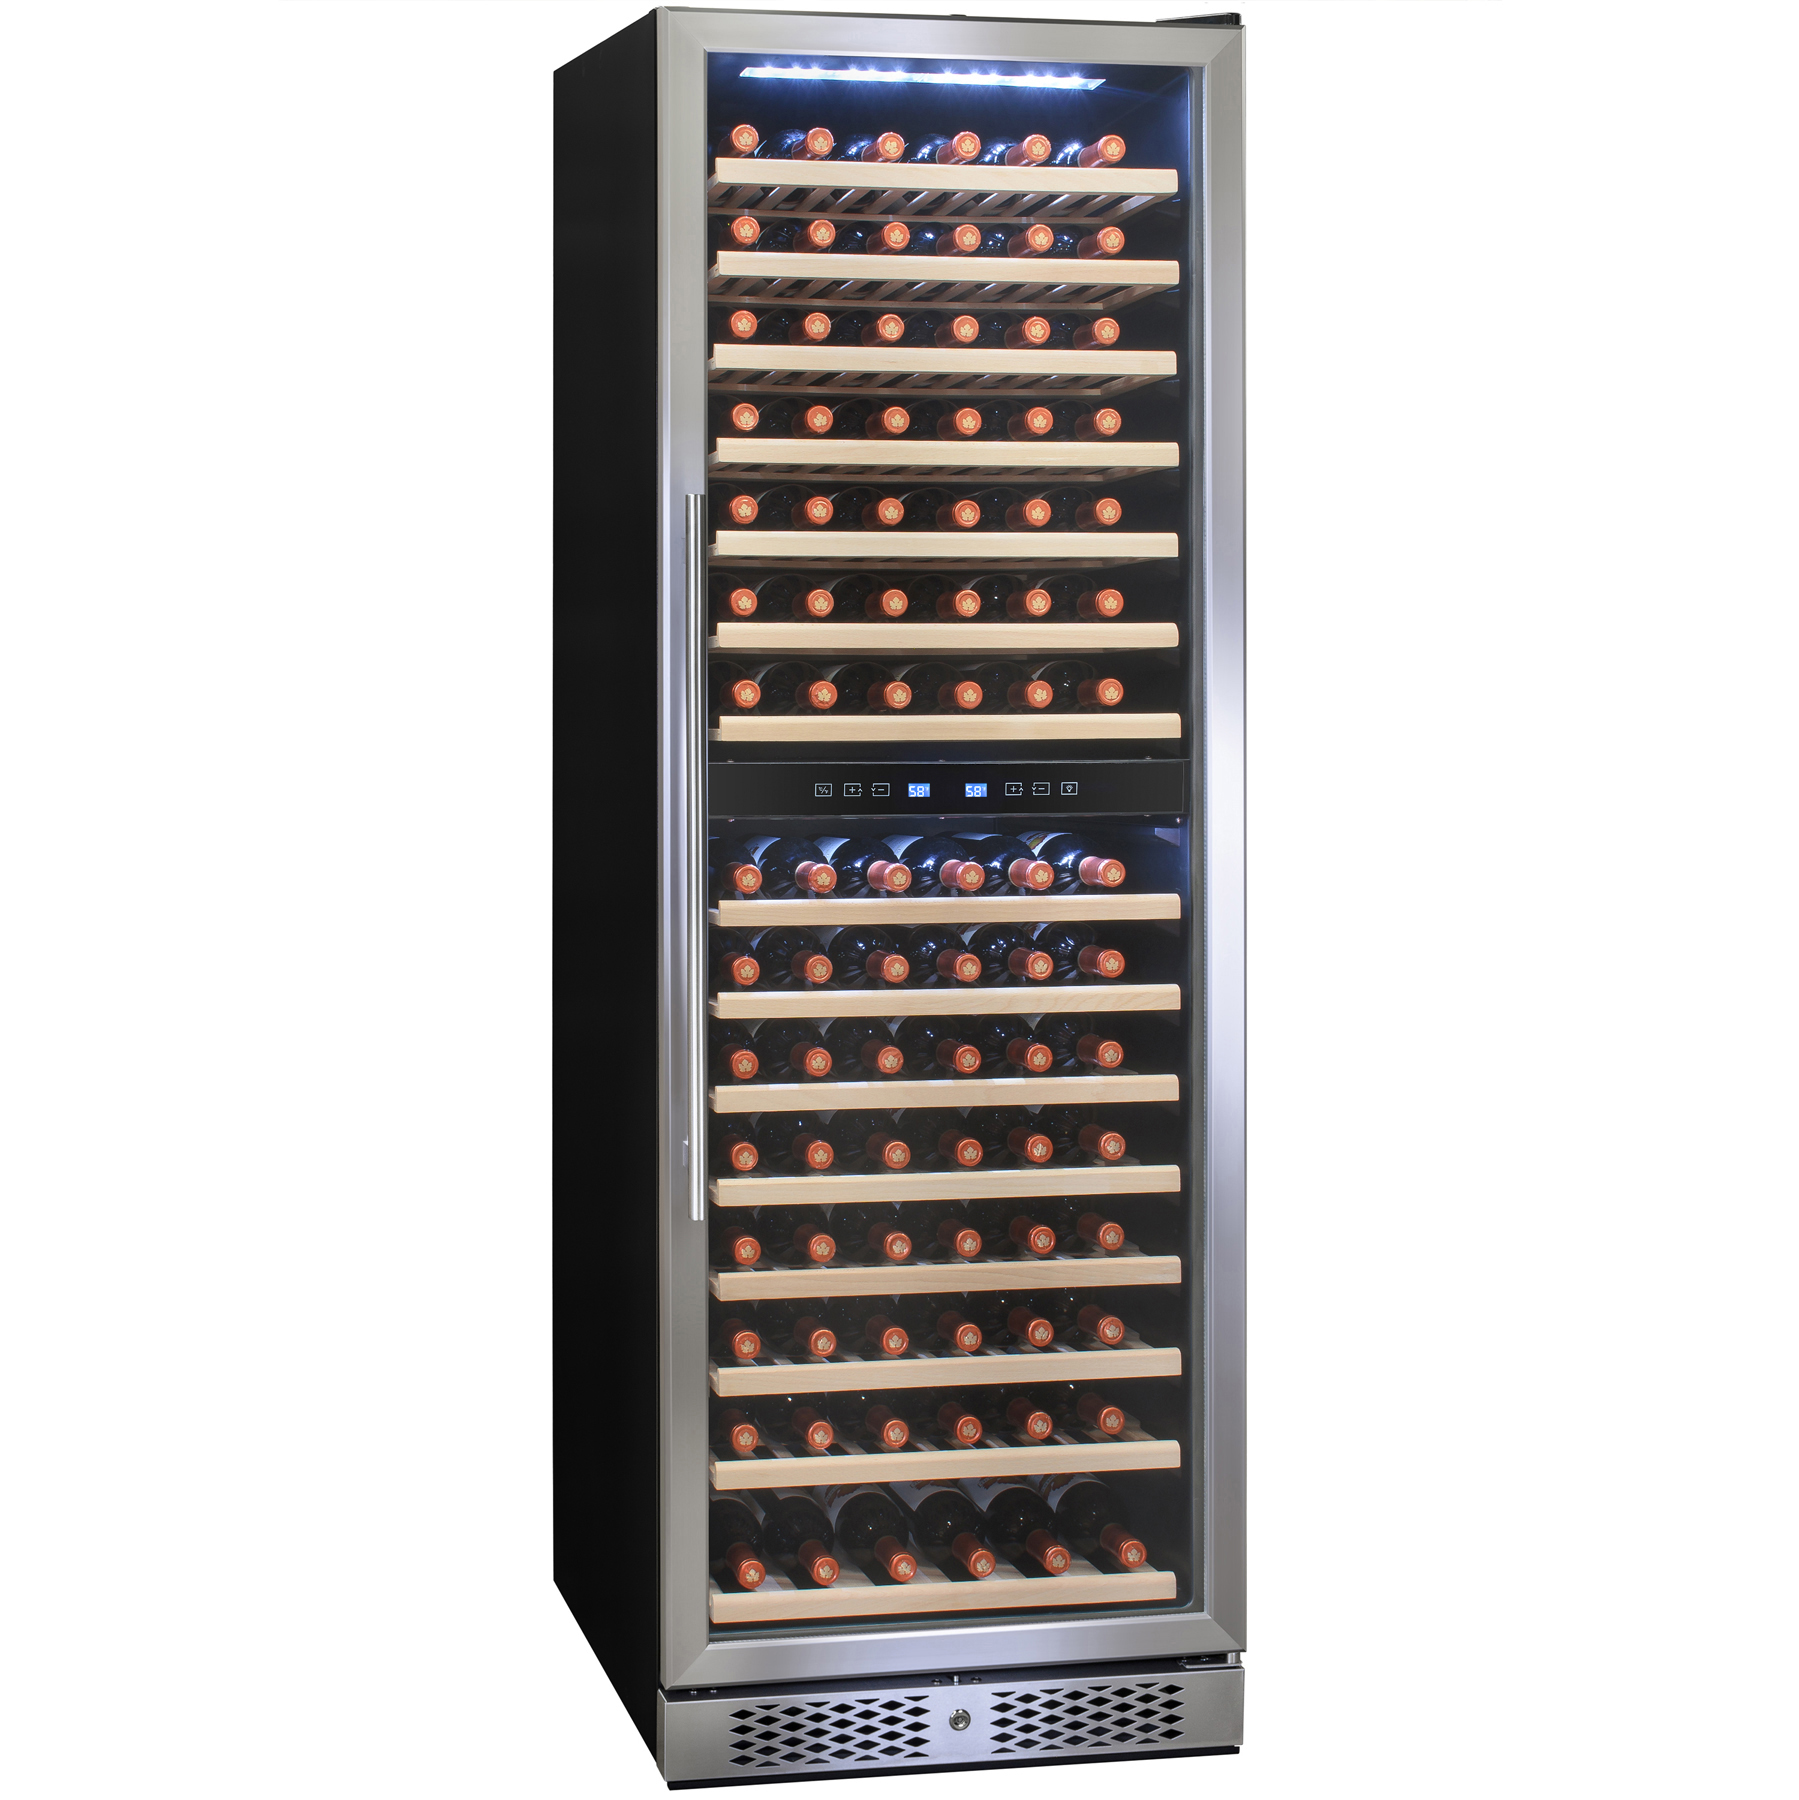 Image of AKDY 160 Bottle Dual Zone Compressor Touch Control Freestanding Wine Cooler Chiller